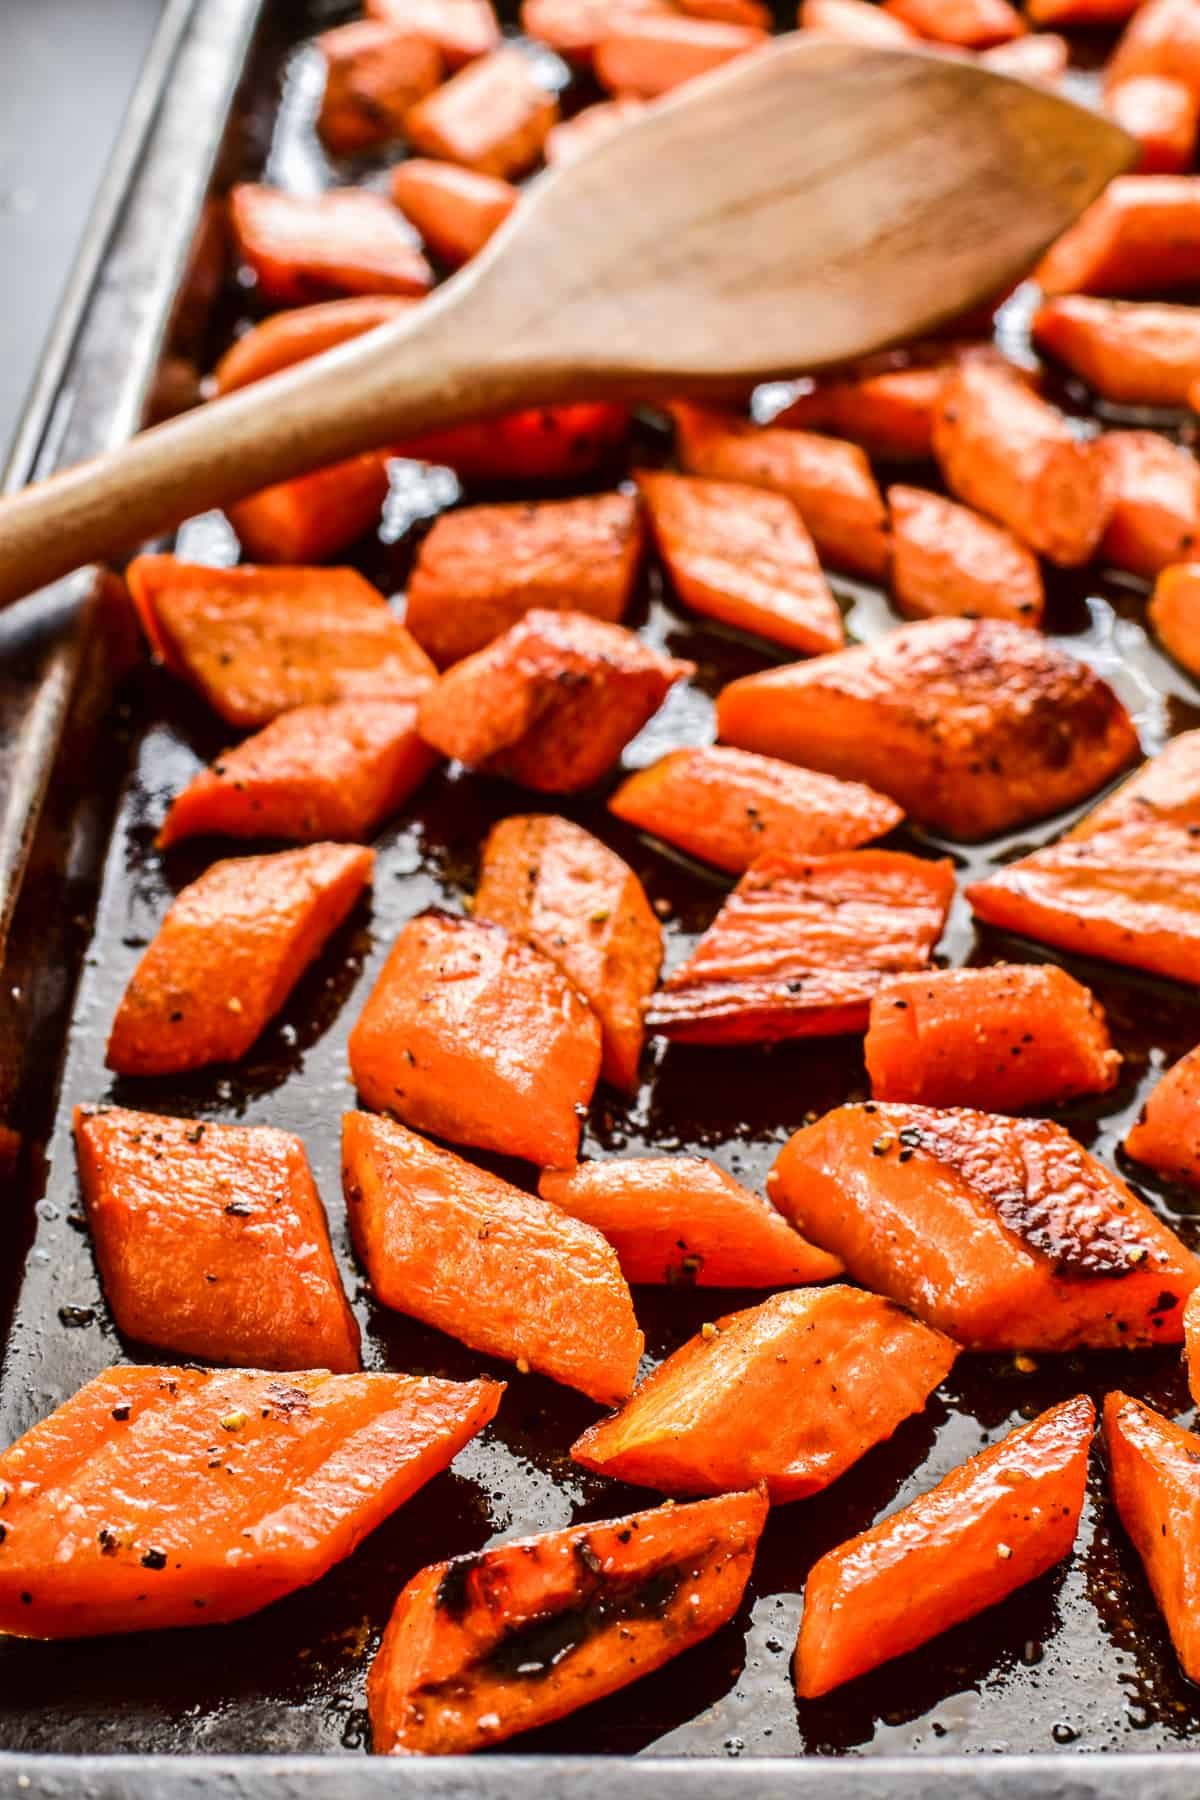 Roasted Carrots on baking pan